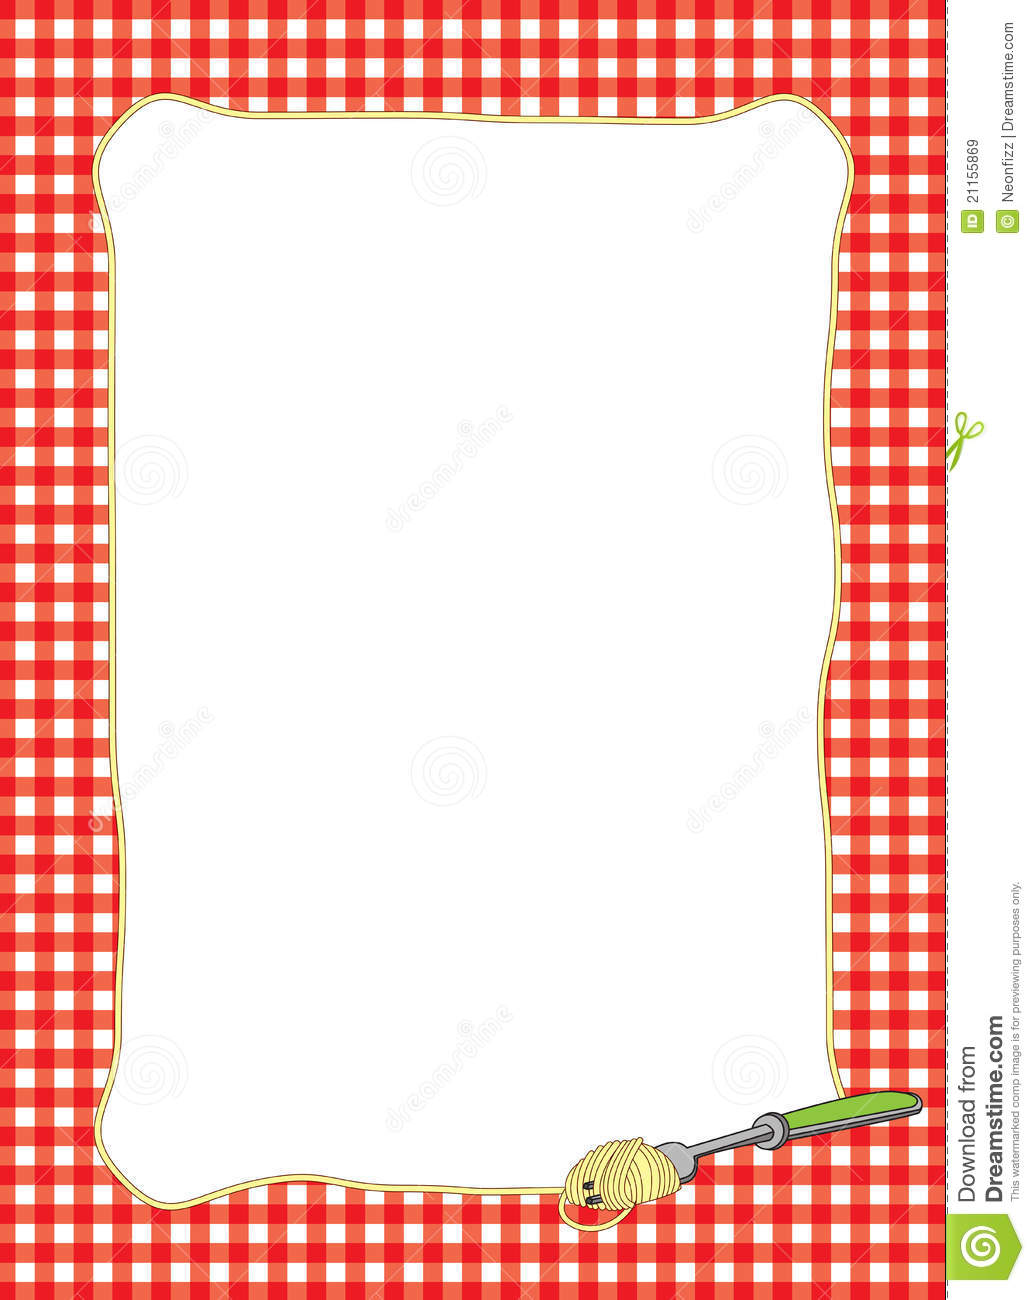 Border Kitchen Utensils Clipart - Clipart Suggest